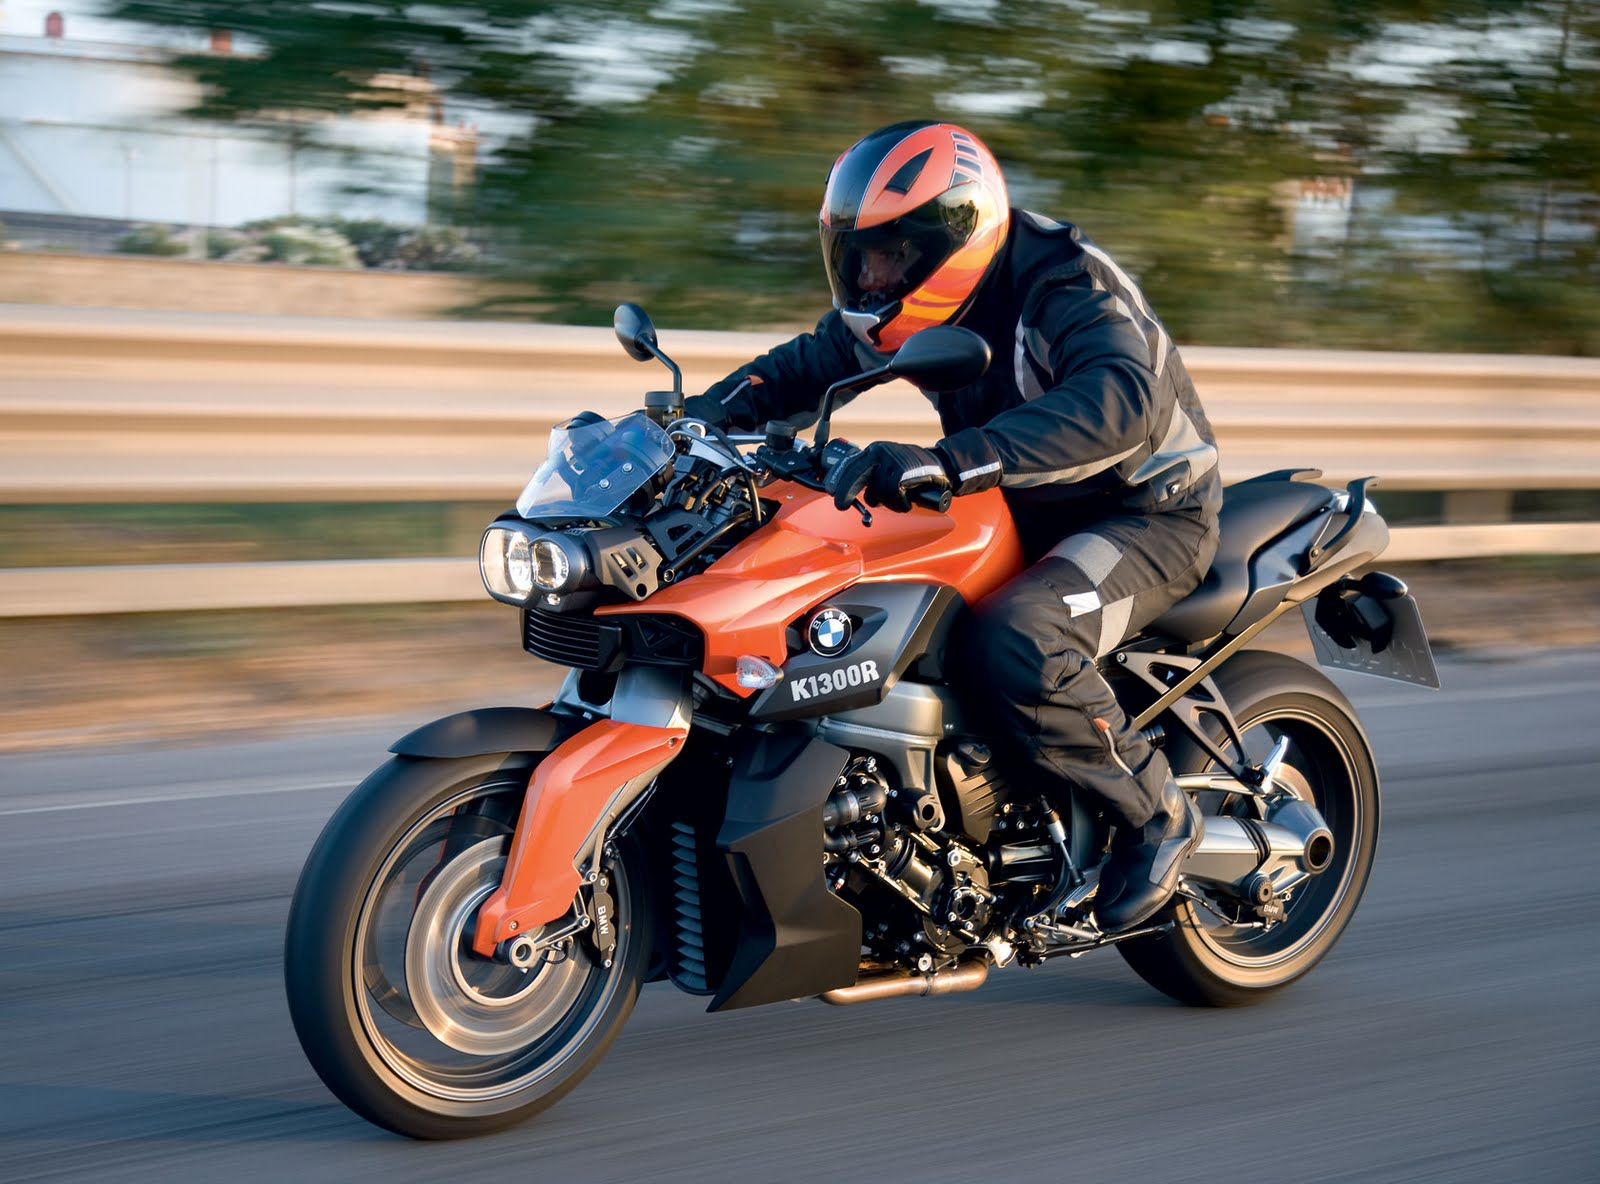 The Best Of Motorcycle 2009 Bmw K1300r